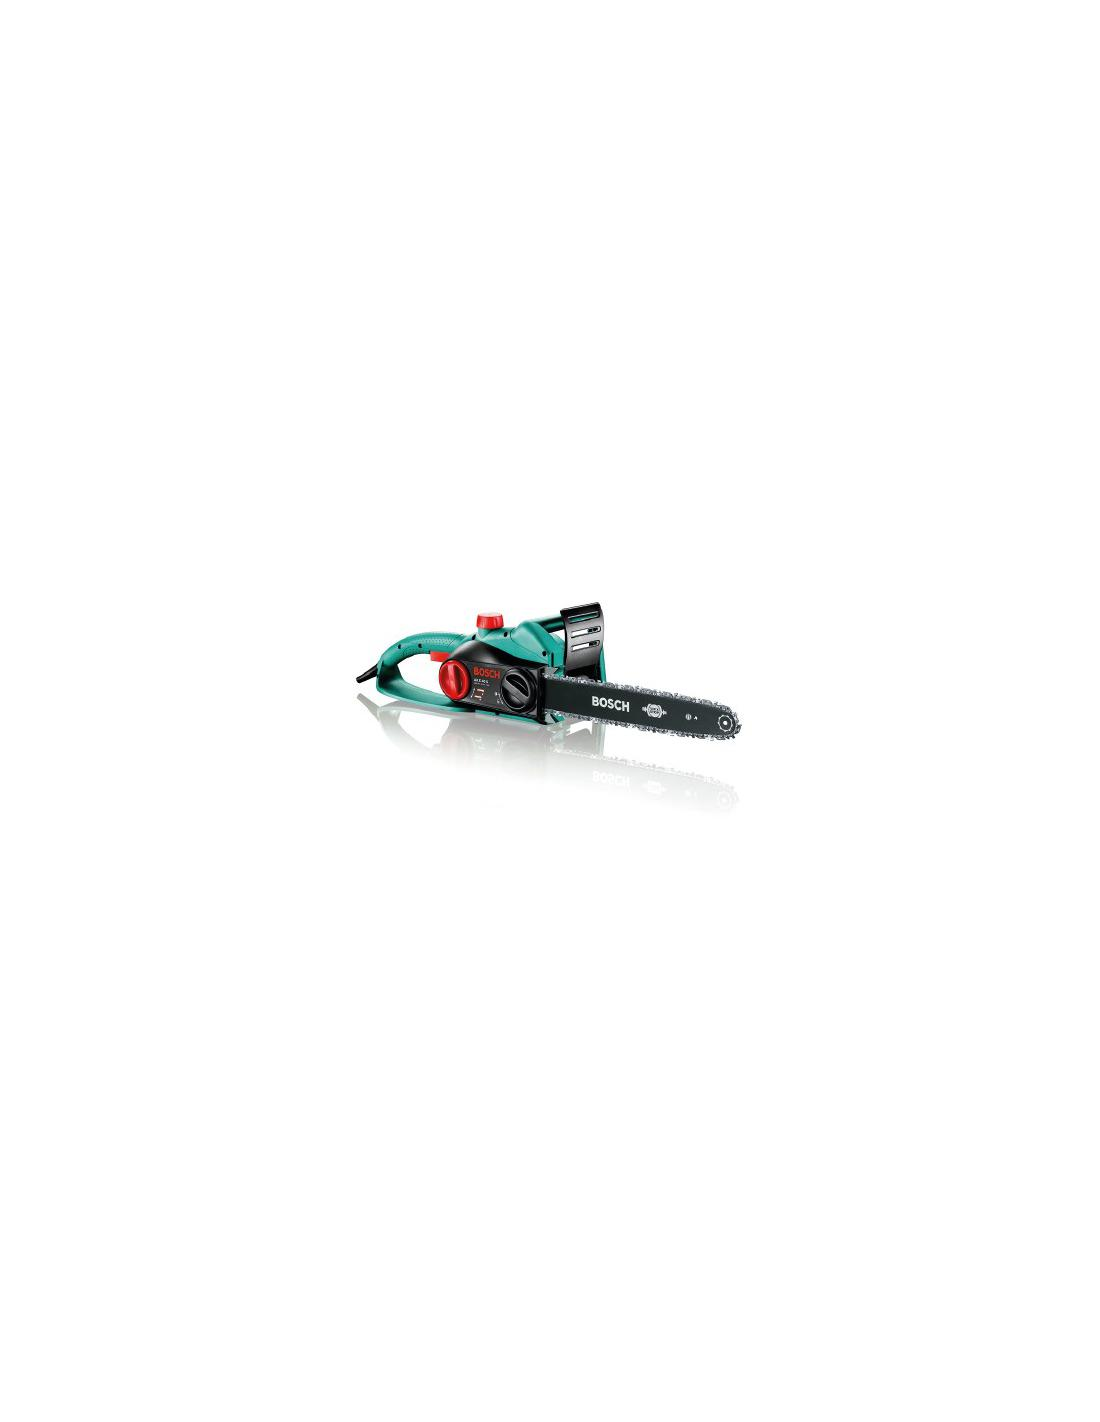 TRONCONEUSE CHAINE AKE 40S BOSCH - 1